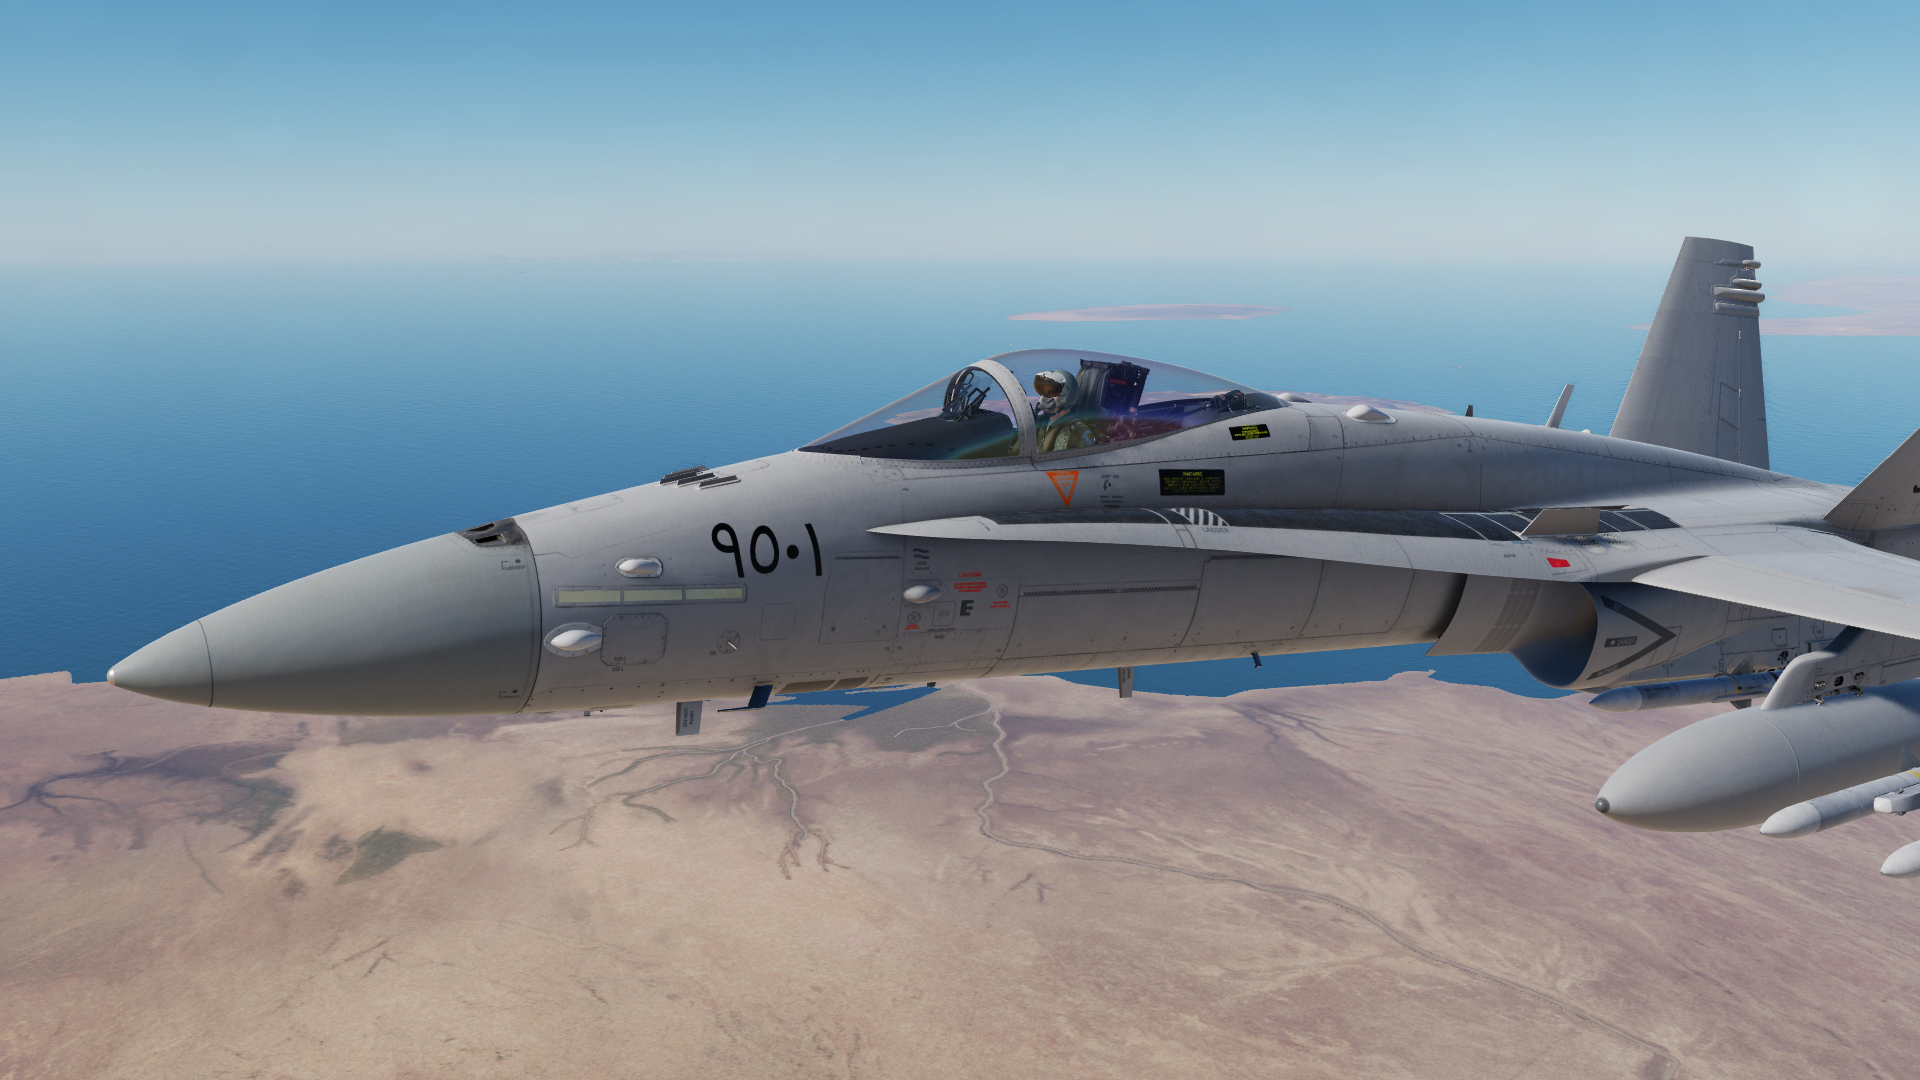 Fictional Egyptian F-18C